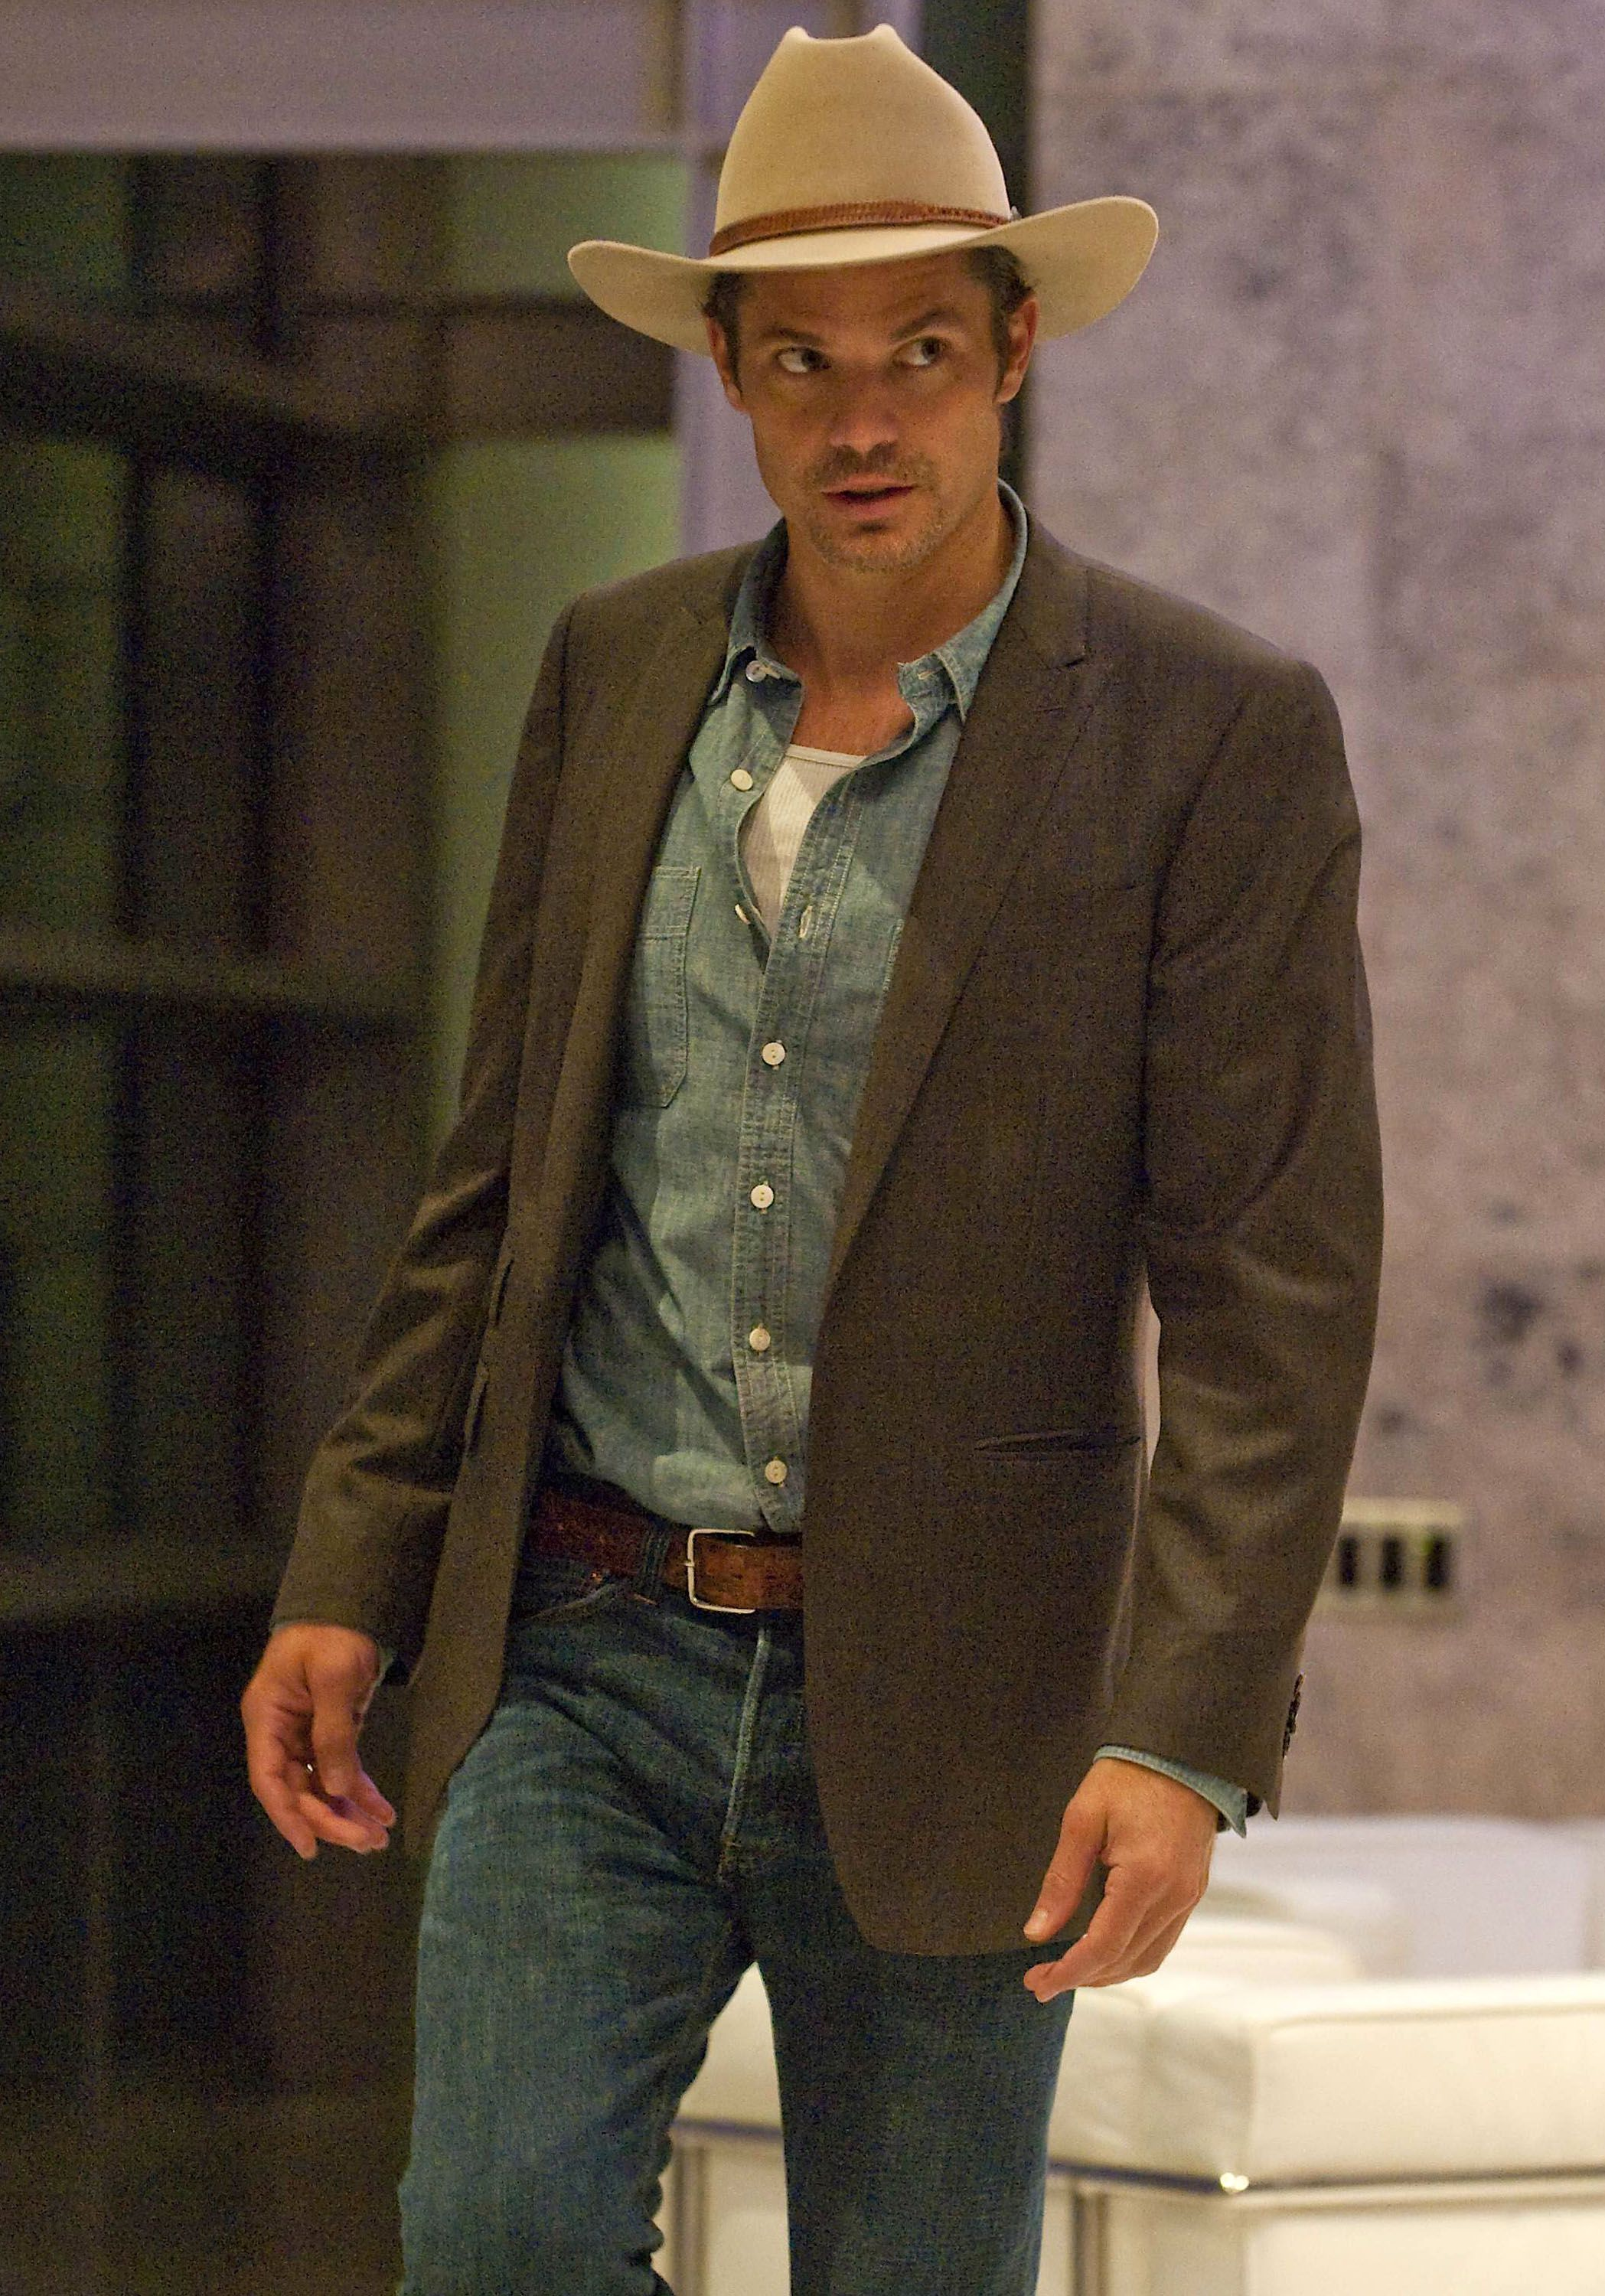 Timothy Olyphant. Man makes a pair of jeans look good ...